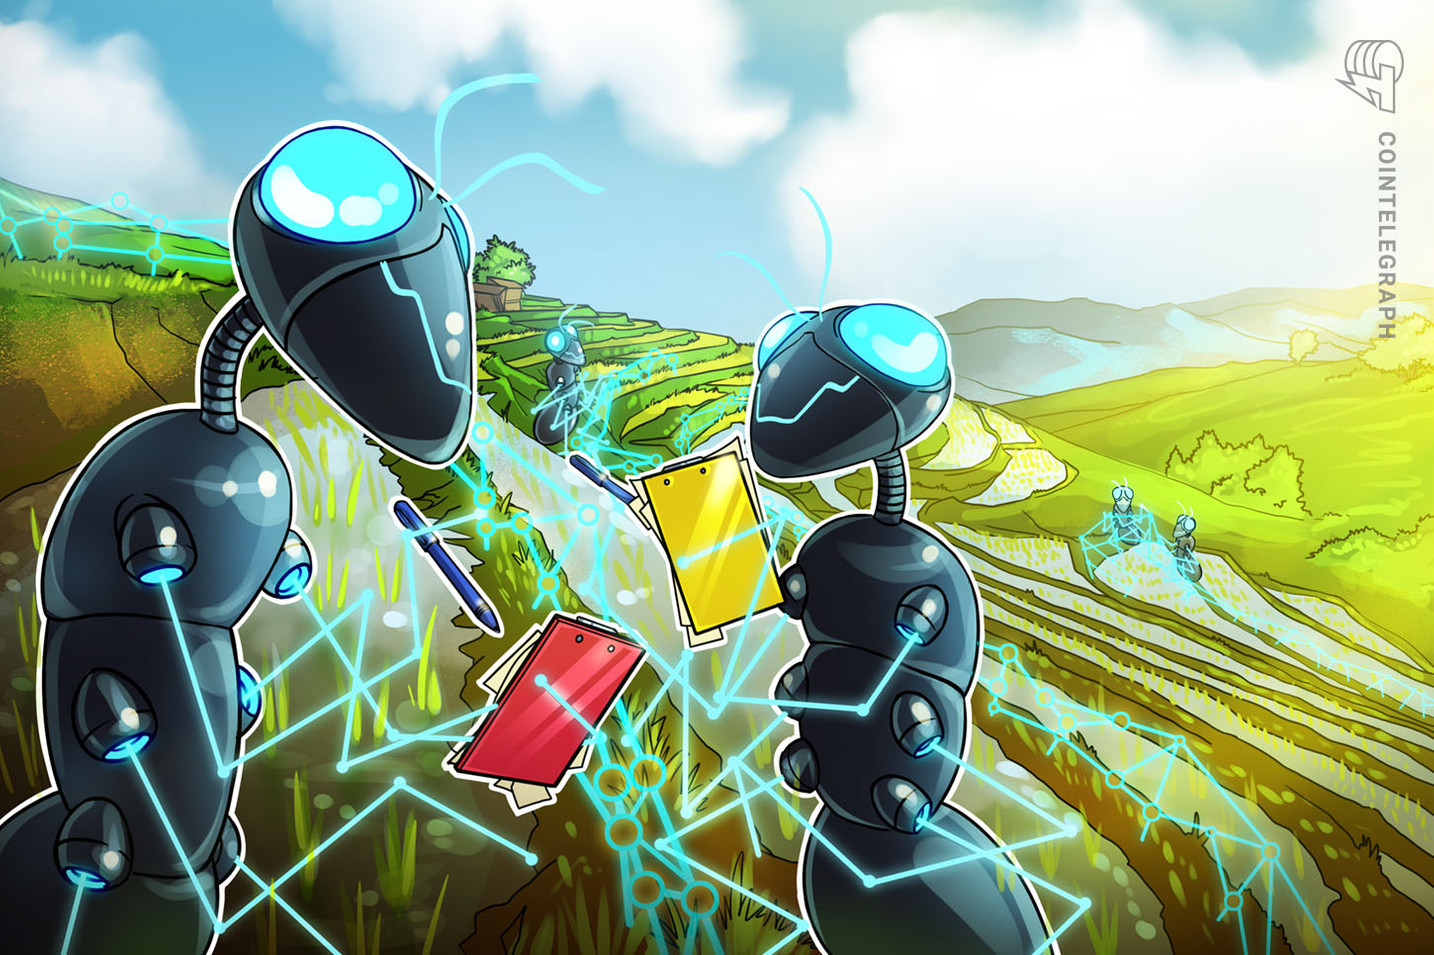 Fruits of the land: Blockchain traceability gives farmers a competitive advantage